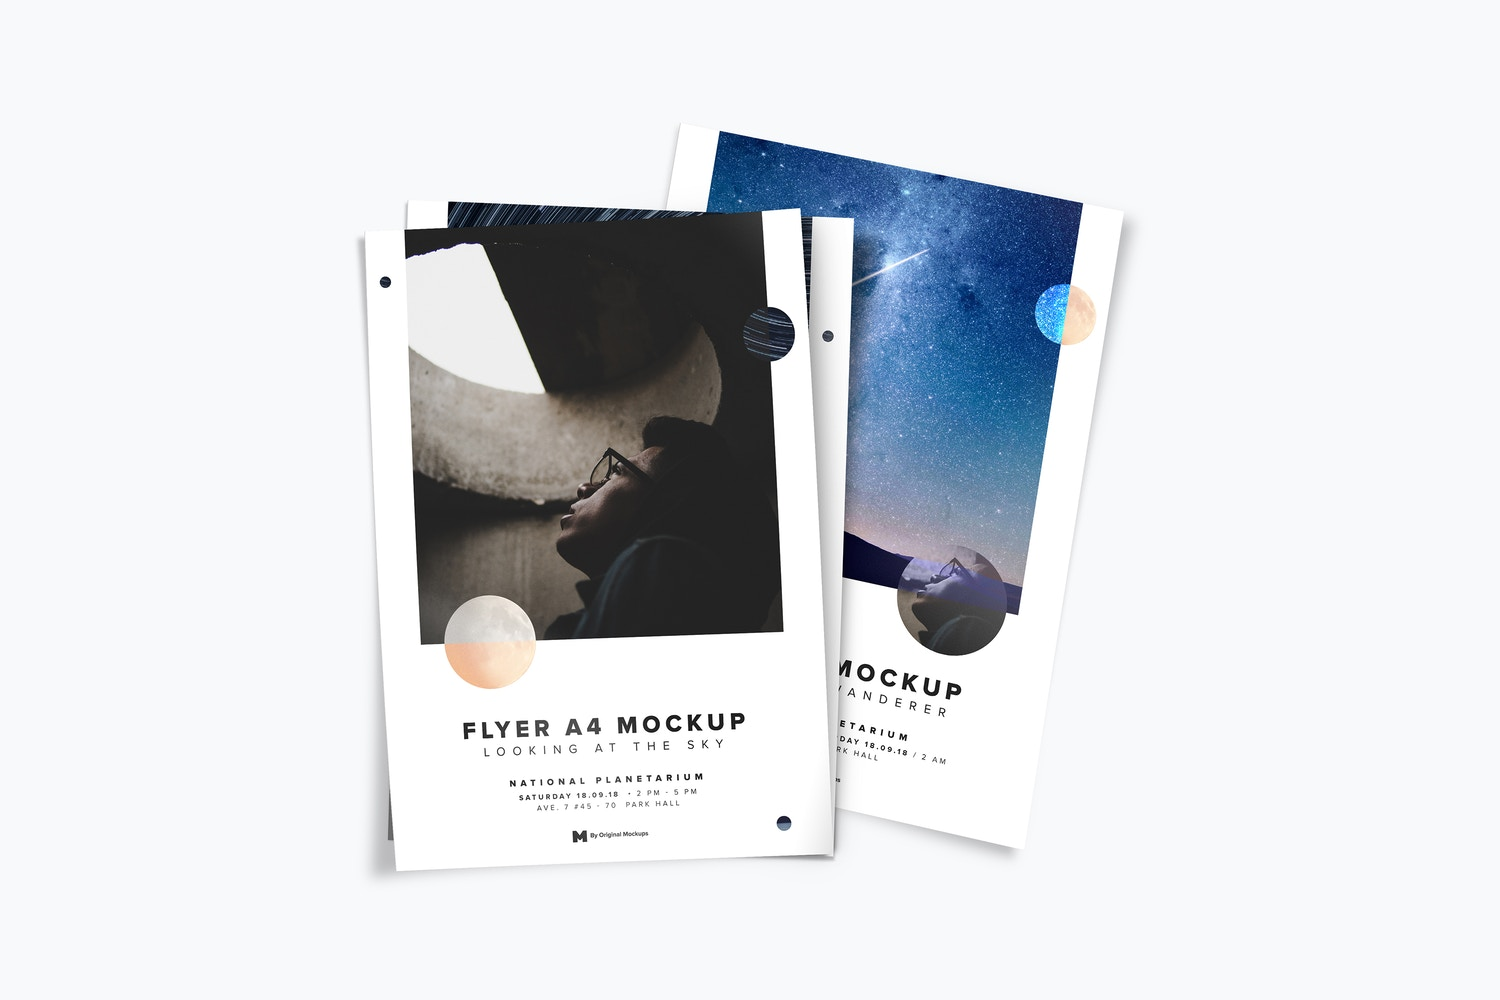 A4-A5 Flyer Stack Mockup 02 by Original Mockups on Original Mockups